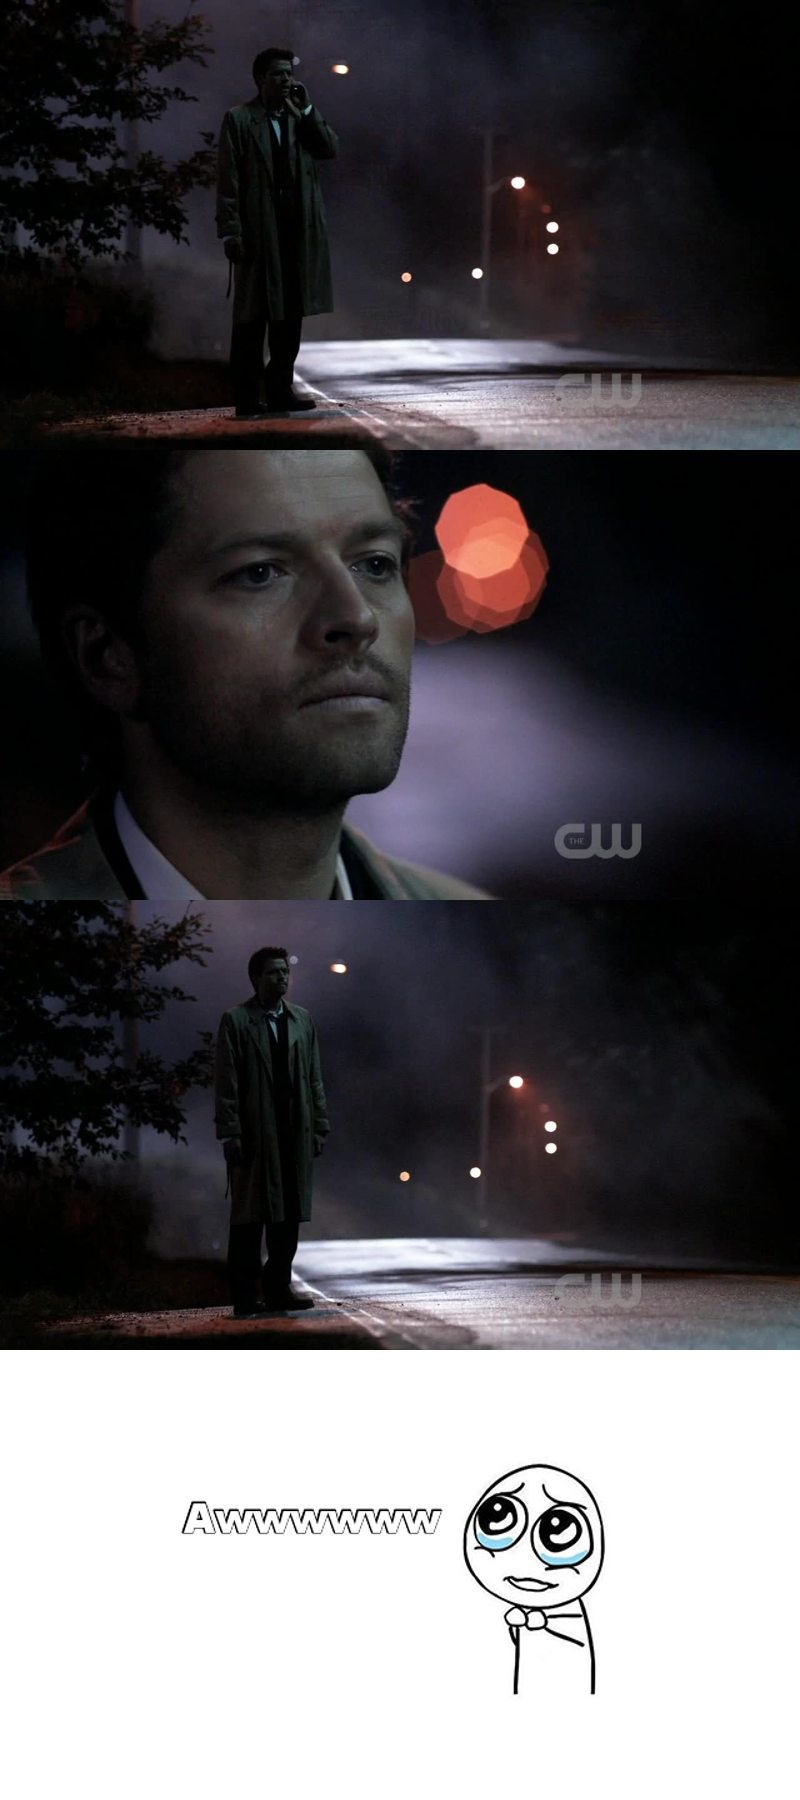 Can we take a moment to appreciate how adorable Castiel is?